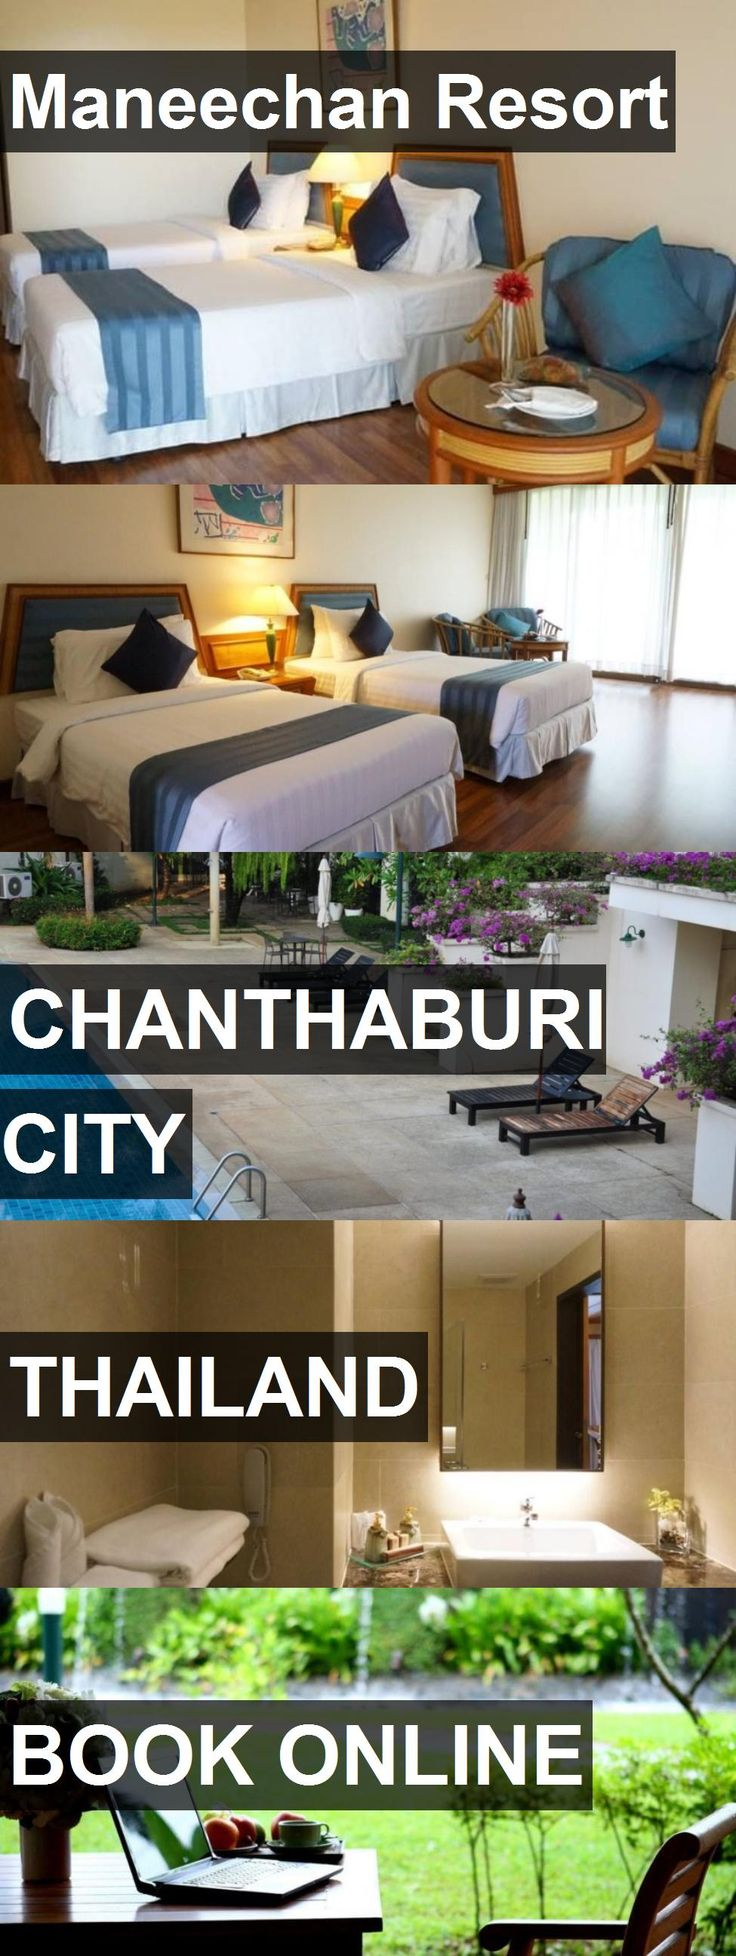 Hotel Maneechan Resort in Chanthaburi City, Thailand. For more information, photos, reviews and best prices please follow the link. #Thailand #ChanthaburiCity #hotel #travel #vacation